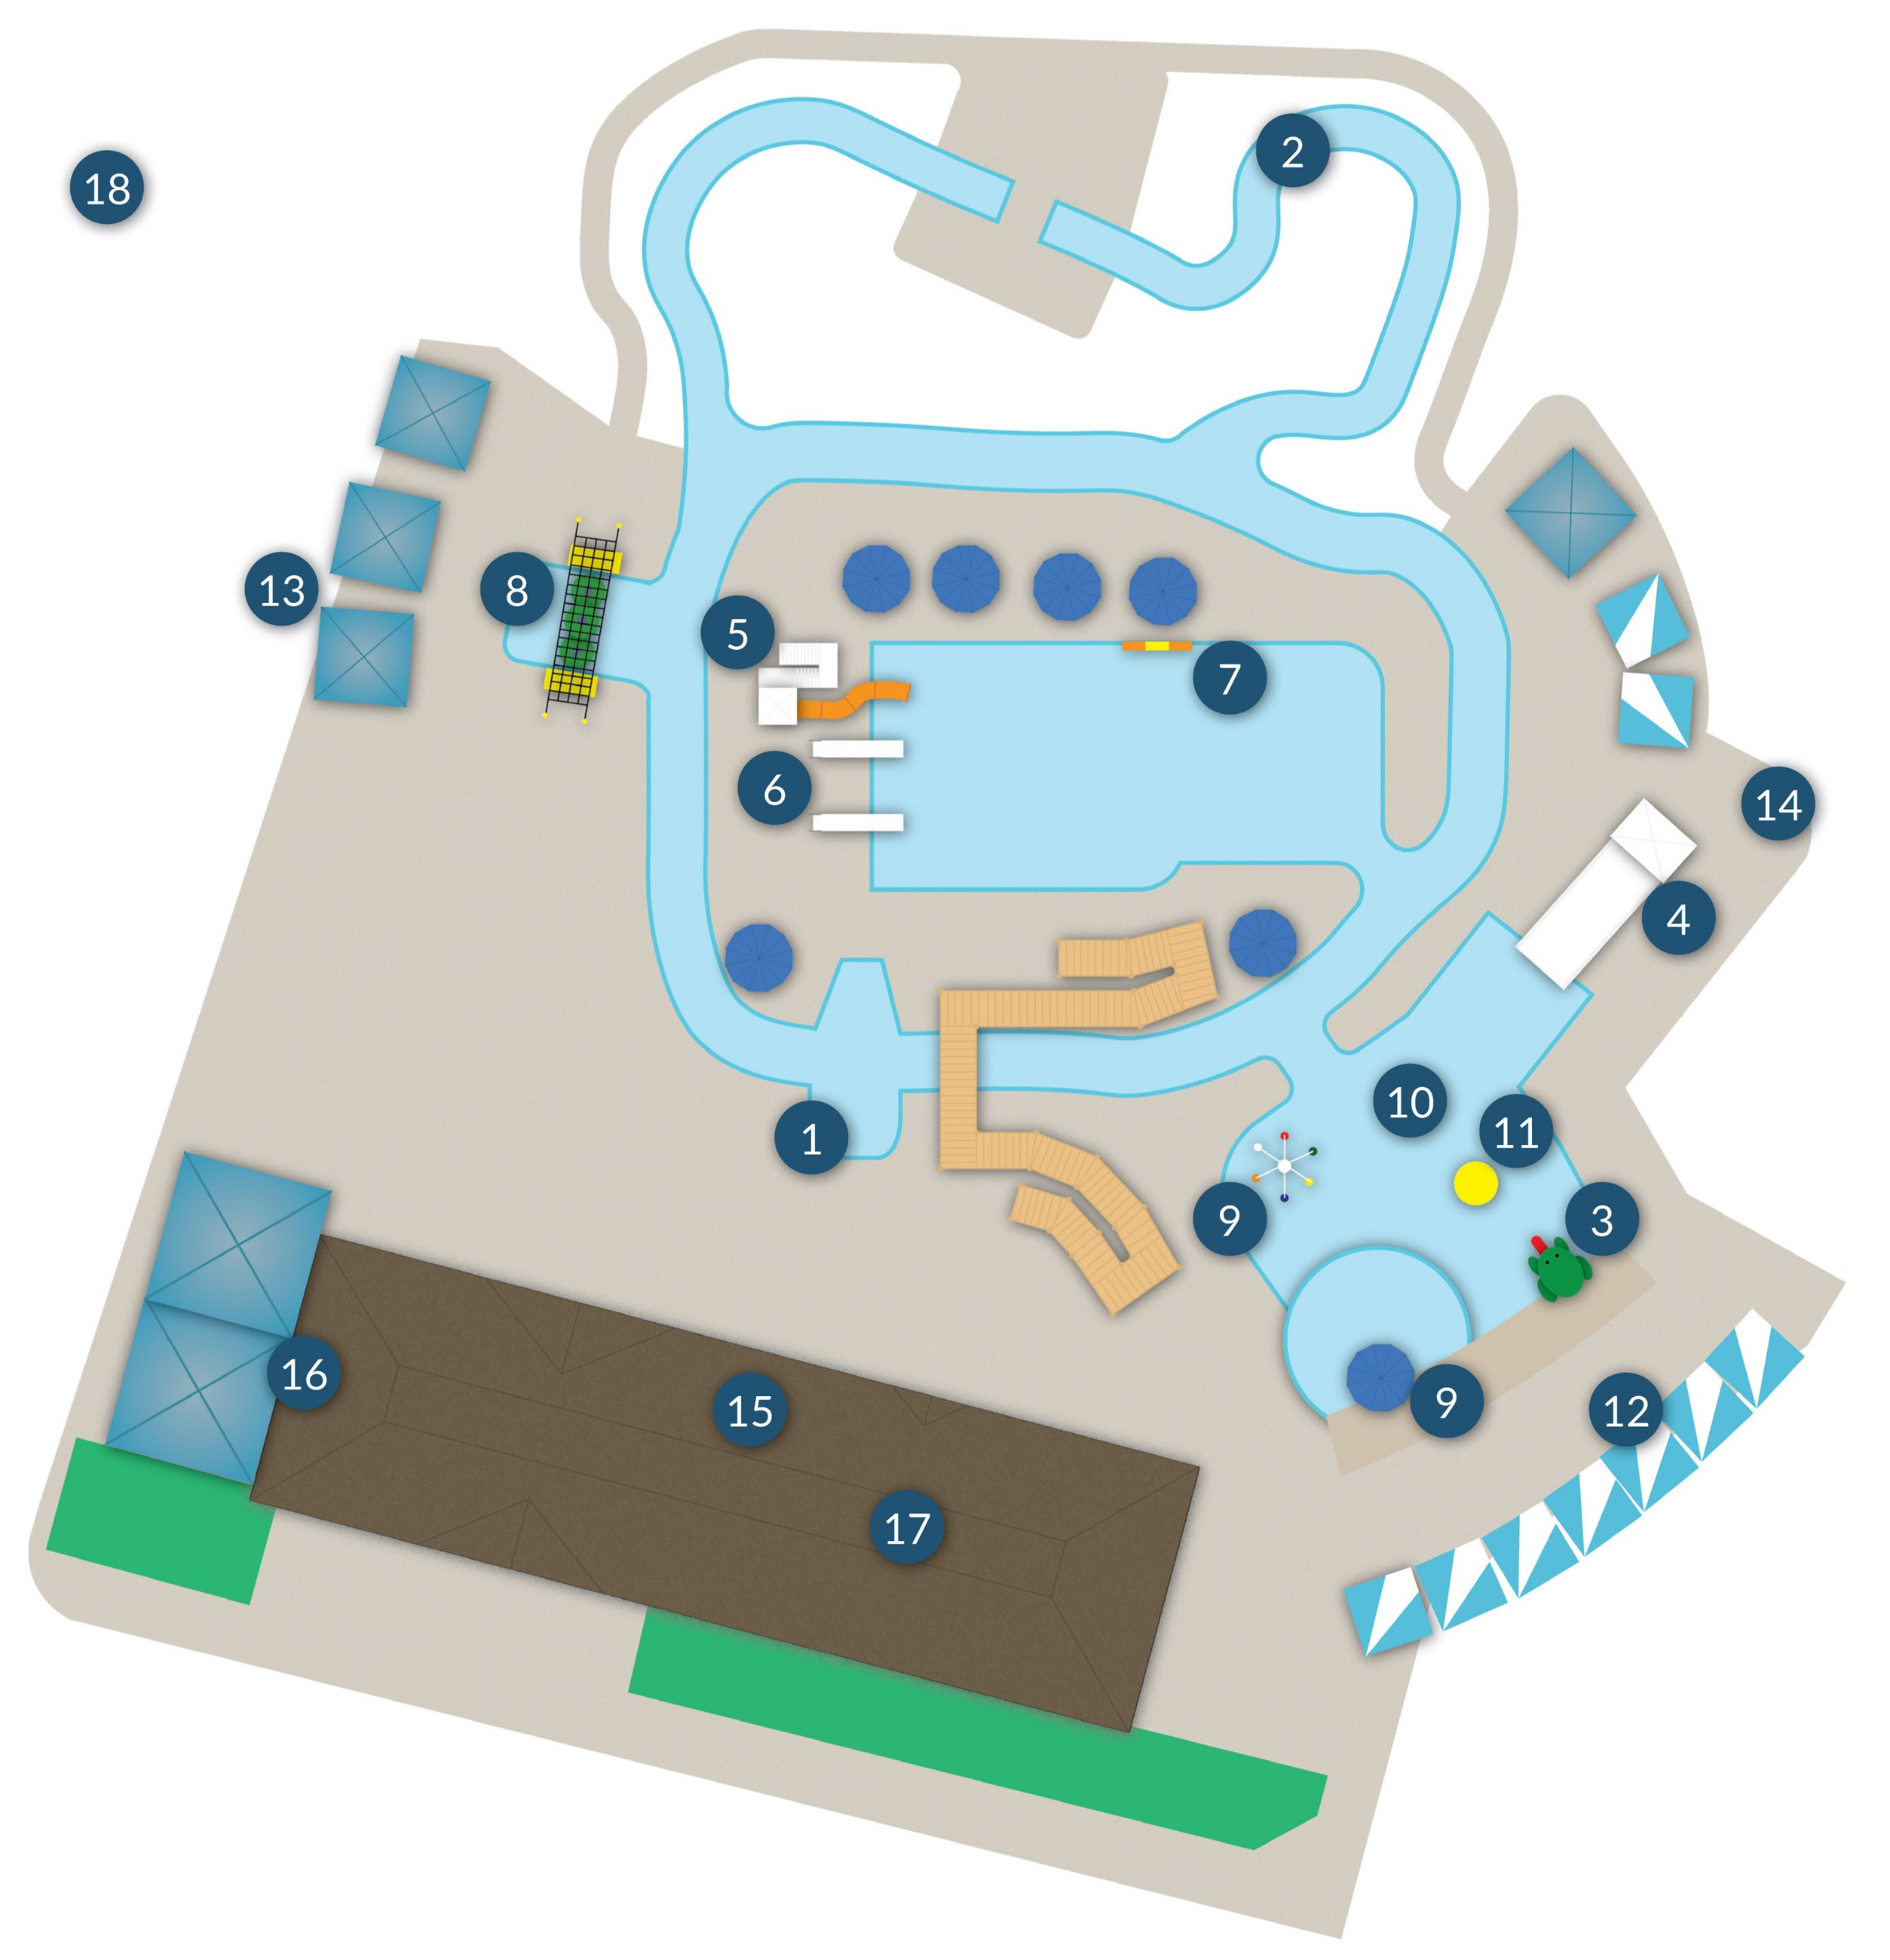 Aquatic Center map-01.jpg